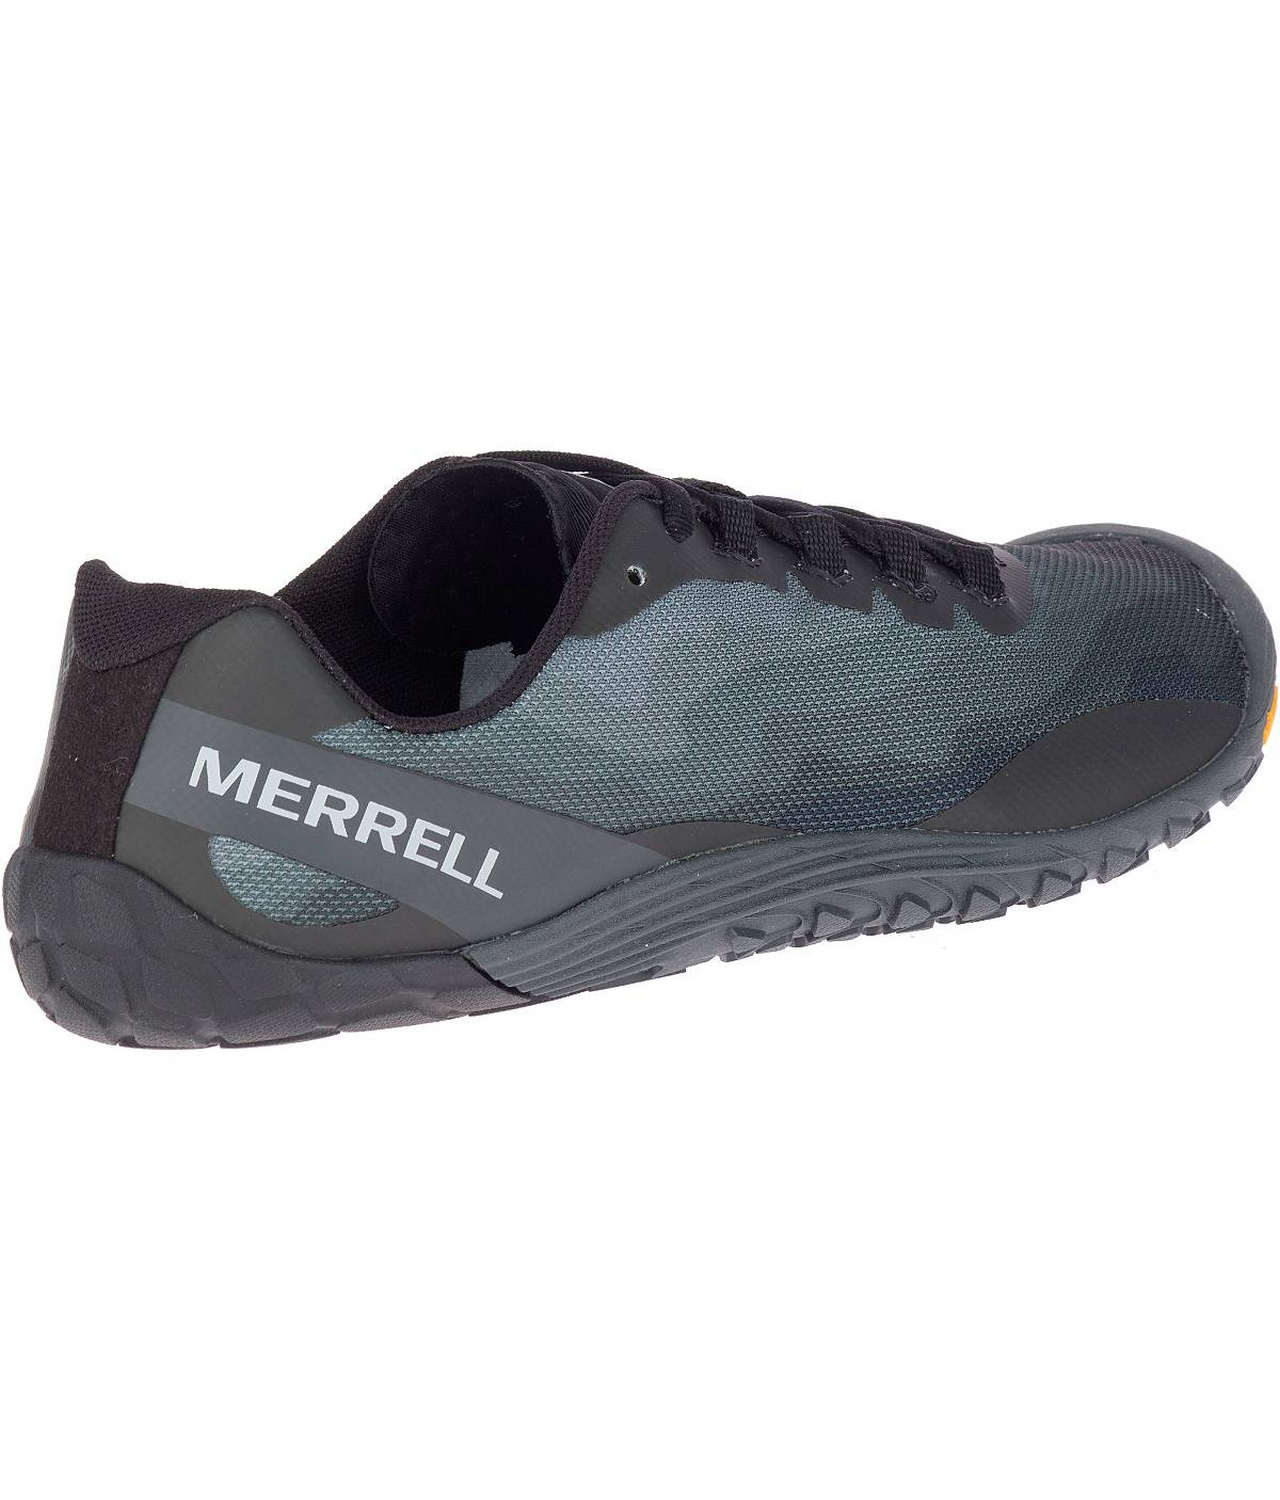 merrell vapor glove 4 3d test in